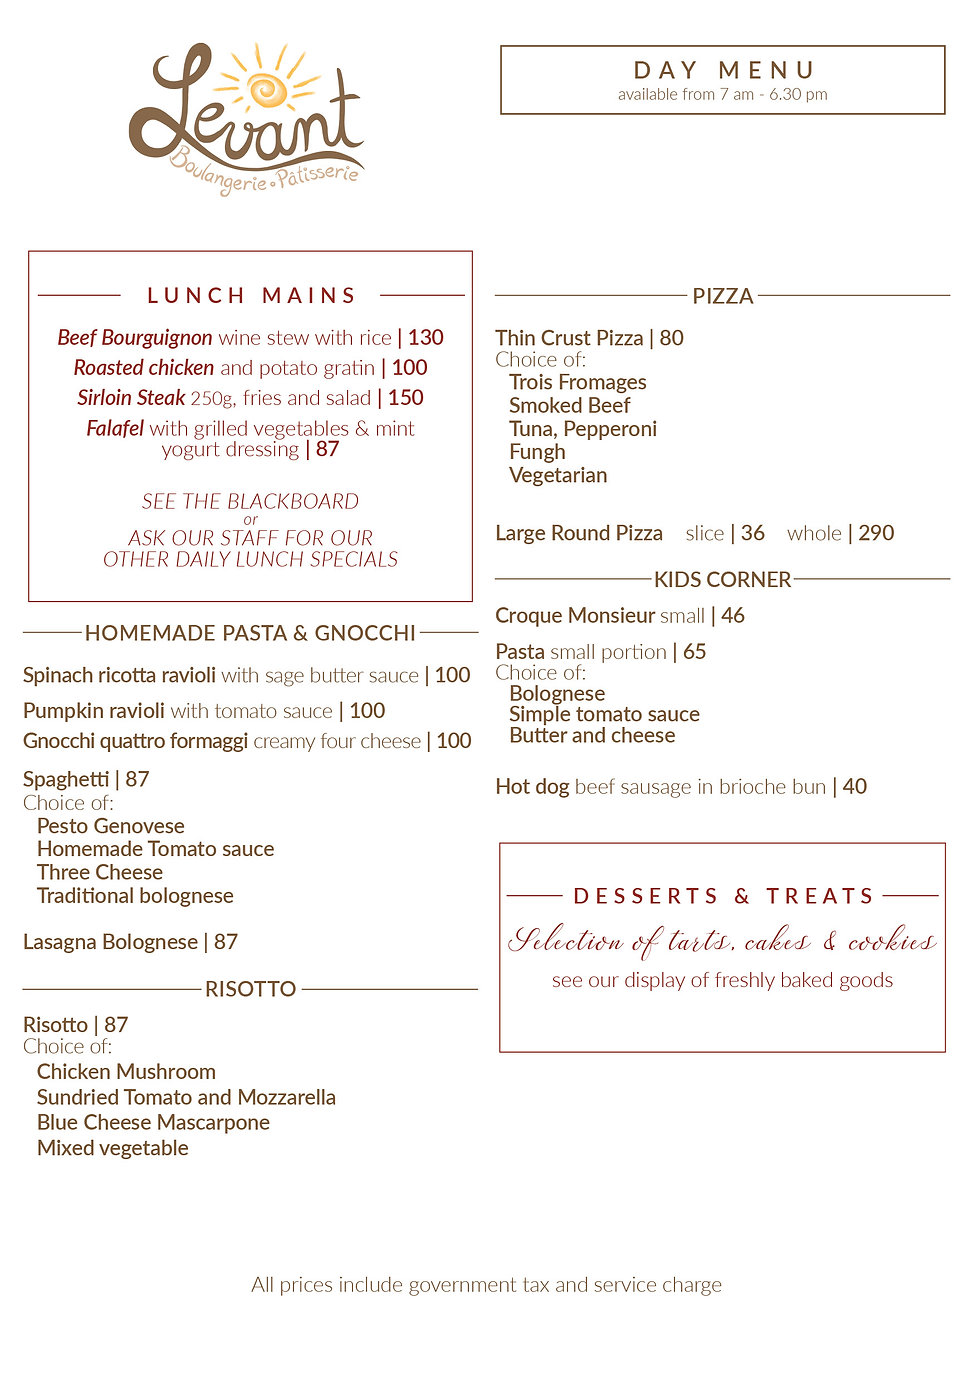 Menu 2020 21 for QR daymenu 2.jpg